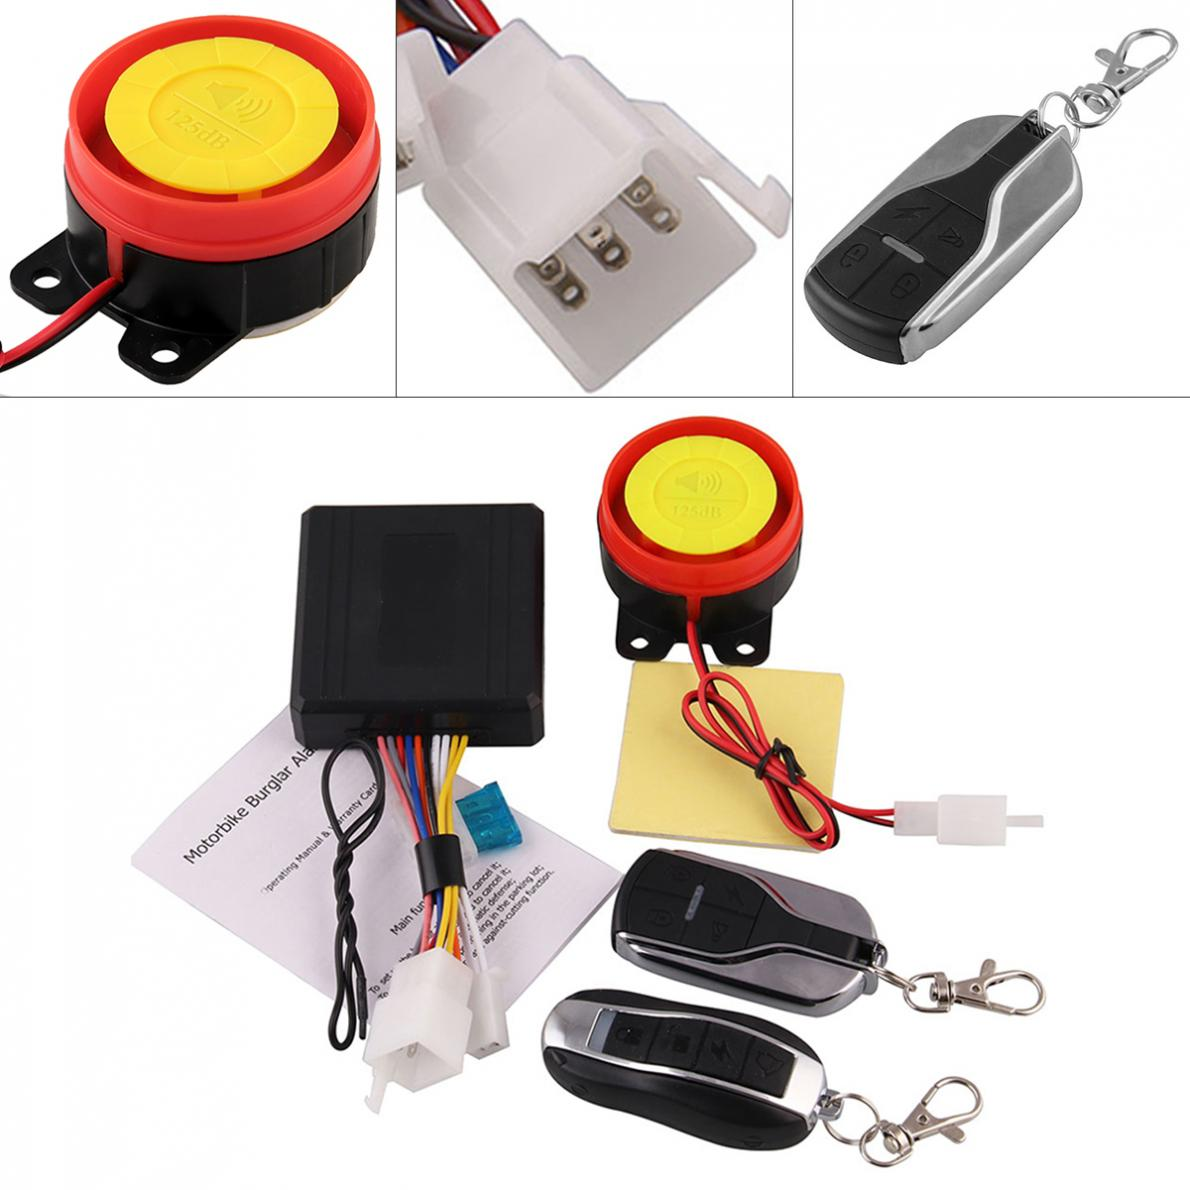 125db 315 Mhz Motorcycle Burglar Alarm Scooter Anti-theft Alarm With Two Remote Control Key For Motorcycle Anti-theft System